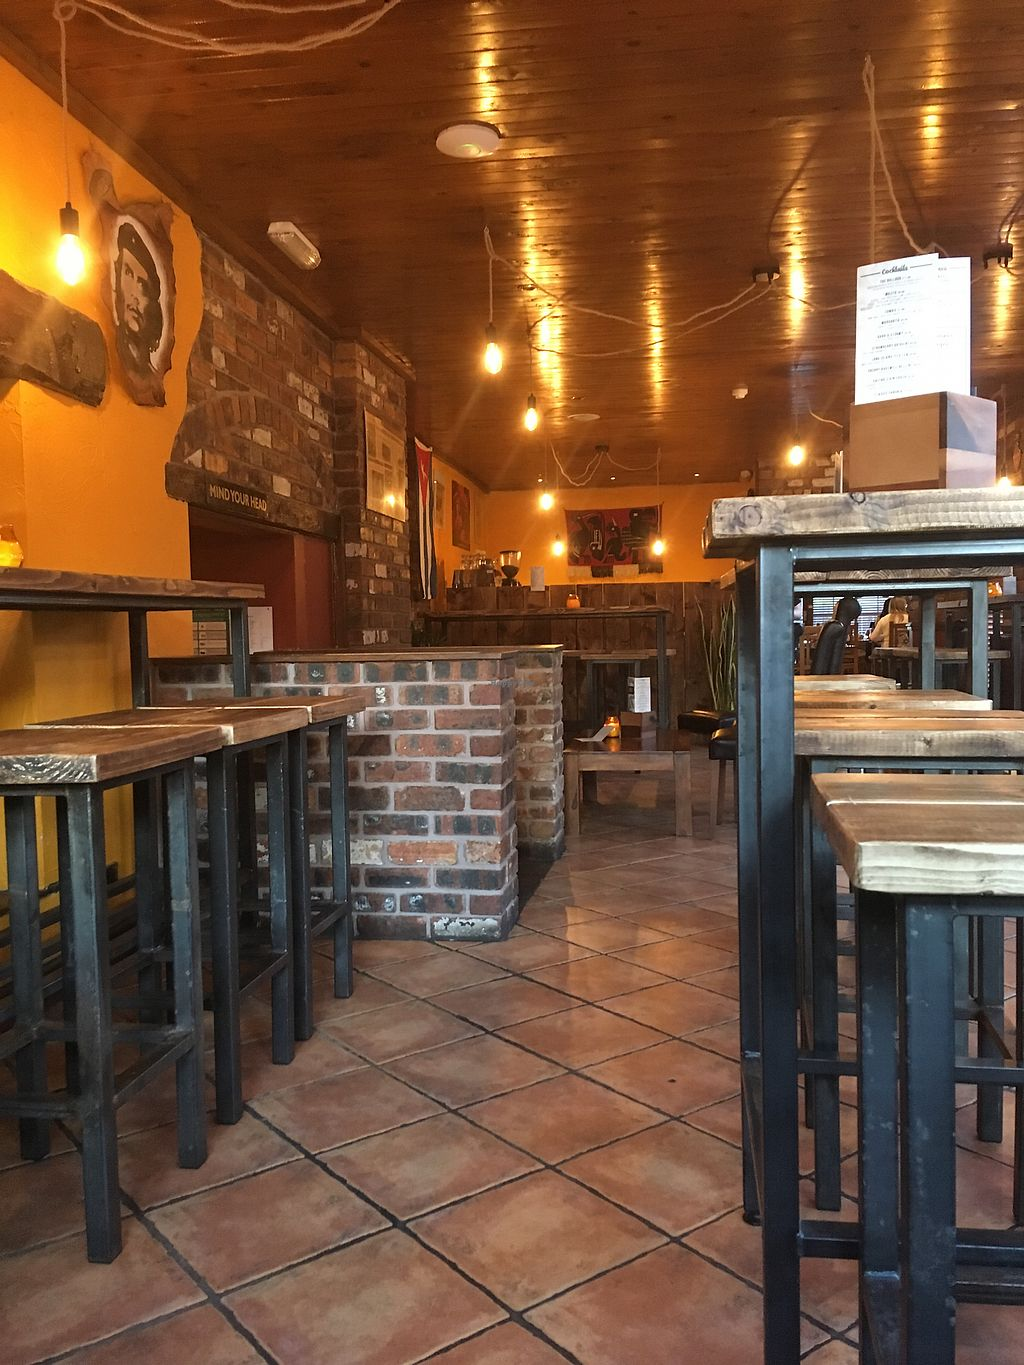 """Photo of Castro's Restaurant and Lounge  by <a href=""""/members/profile/DavidAJ"""">DavidAJ</a> <br/>Waiting area at Castro's  <br/> April 2, 2018  - <a href='/contact/abuse/image/114595/379822'>Report</a>"""